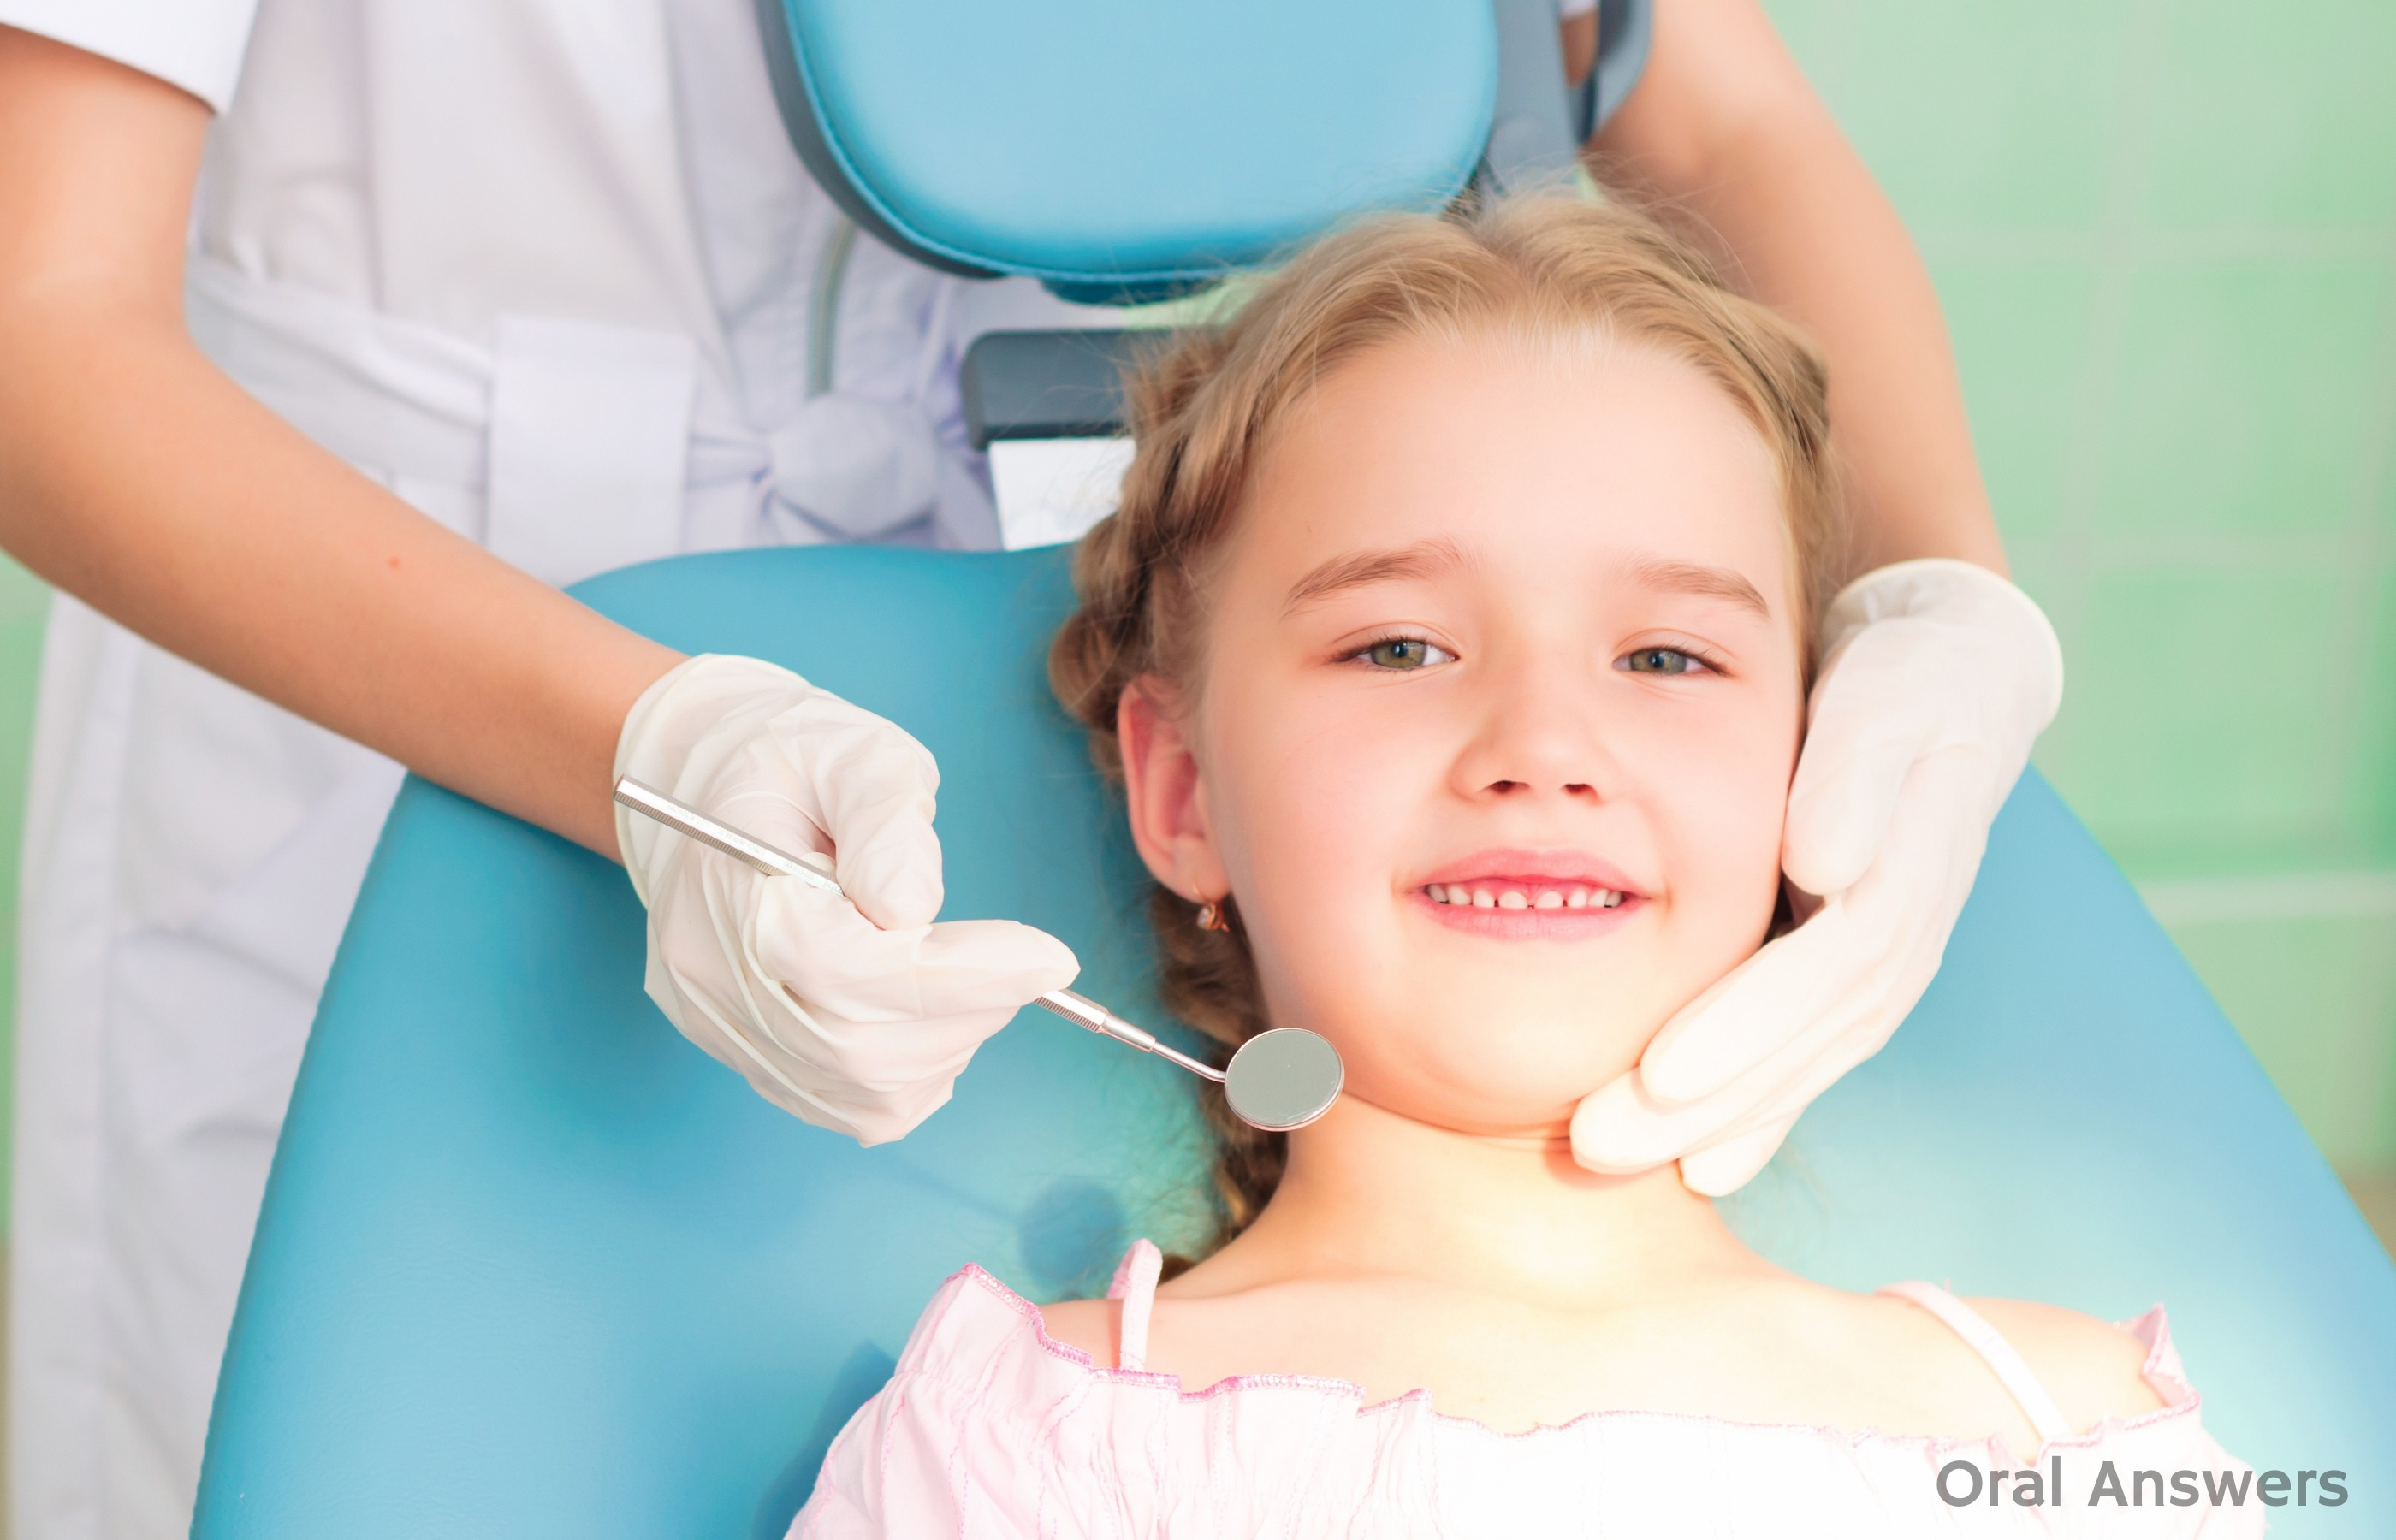 CO2 laser - palm valley pediatric dentistry and orthodontics